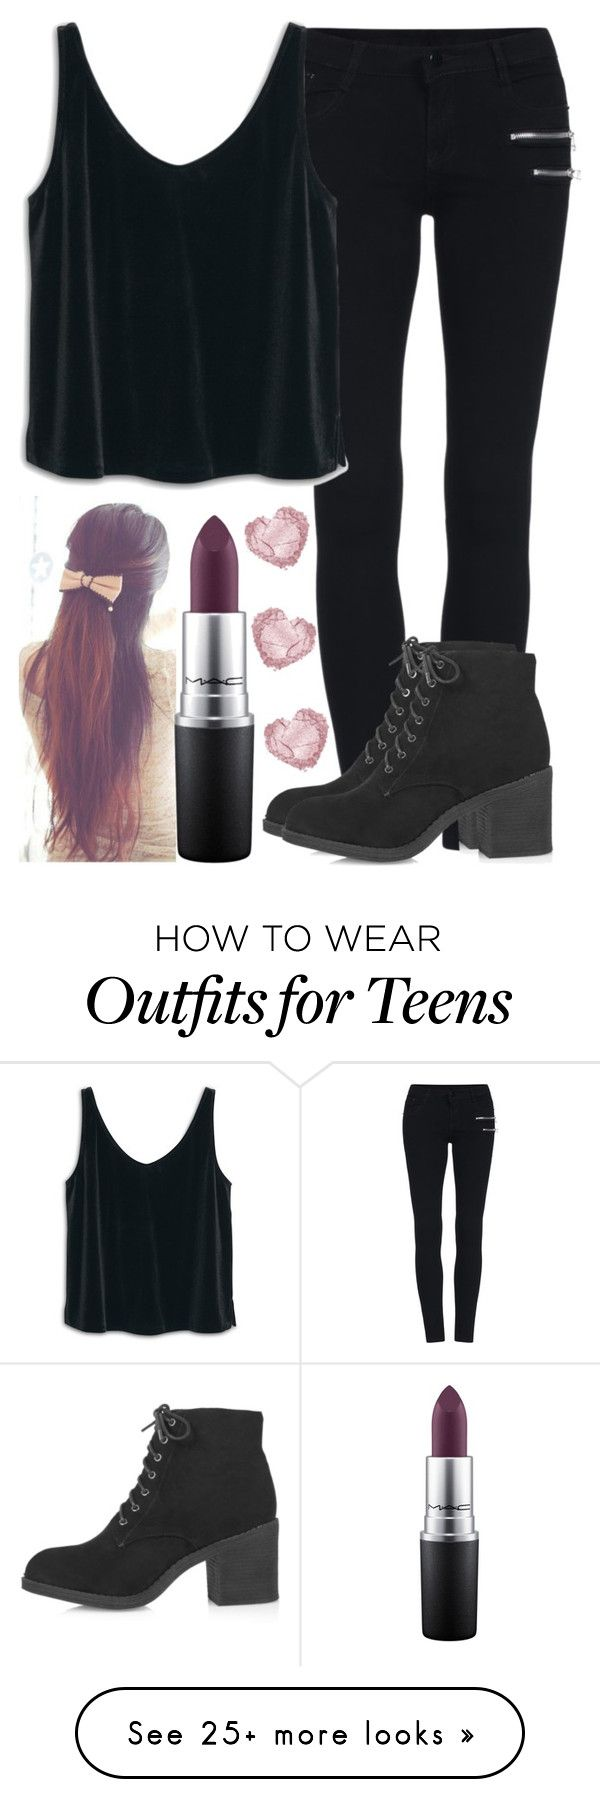 """*//I'll find another you another way\*"" by crazydirectionergirl on Polyvore featuring MANGO, MAC Cosmetics and Topshop"